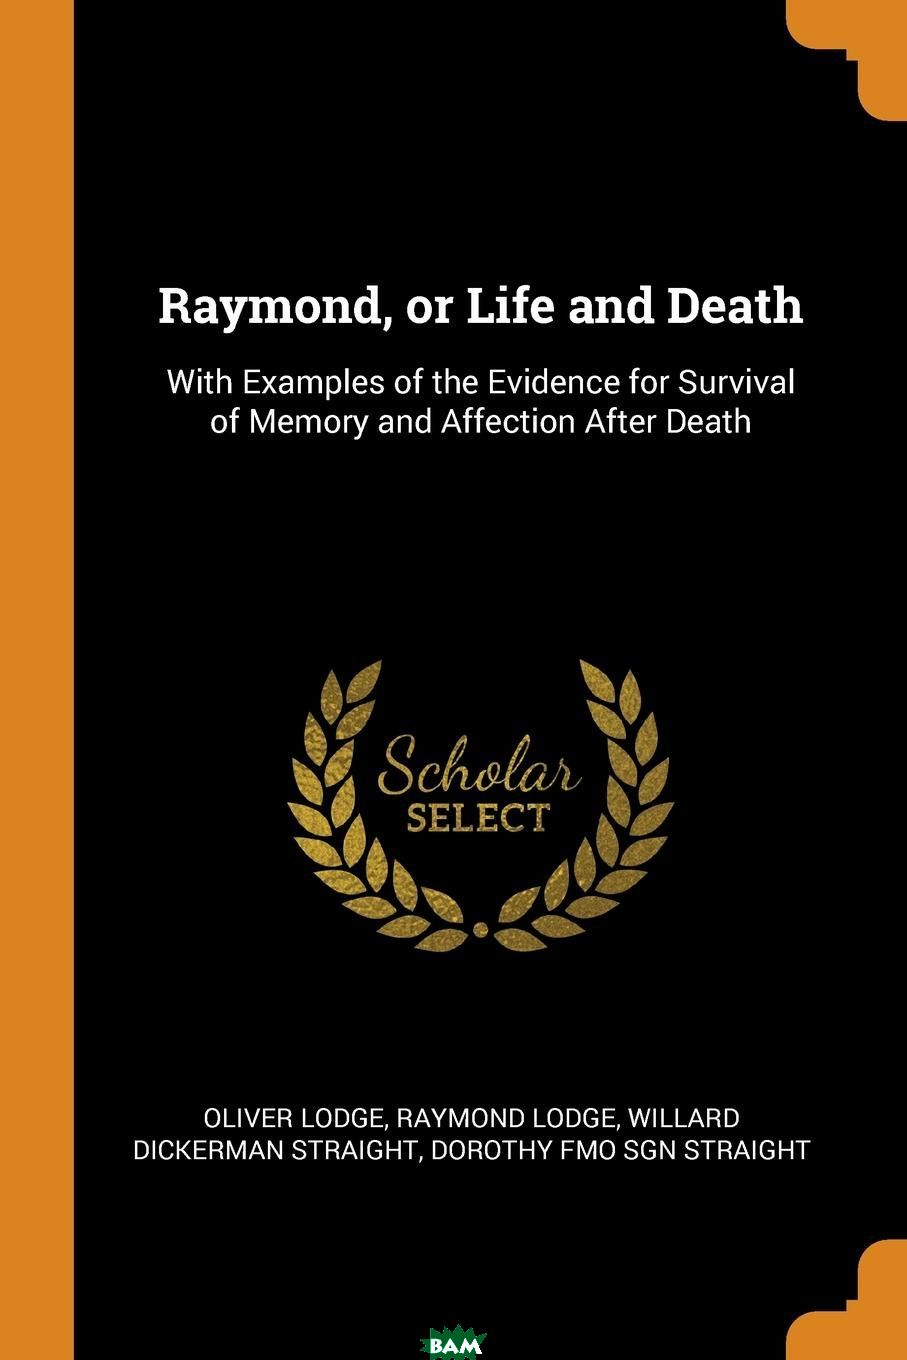 Купить Raymond, or Life and Death. With Examples of the Evidence for Survival of Memory and Affection After Death, Oliver Lodge, Raymond Lodge, Willard Dickerman Straight, 9780353022393